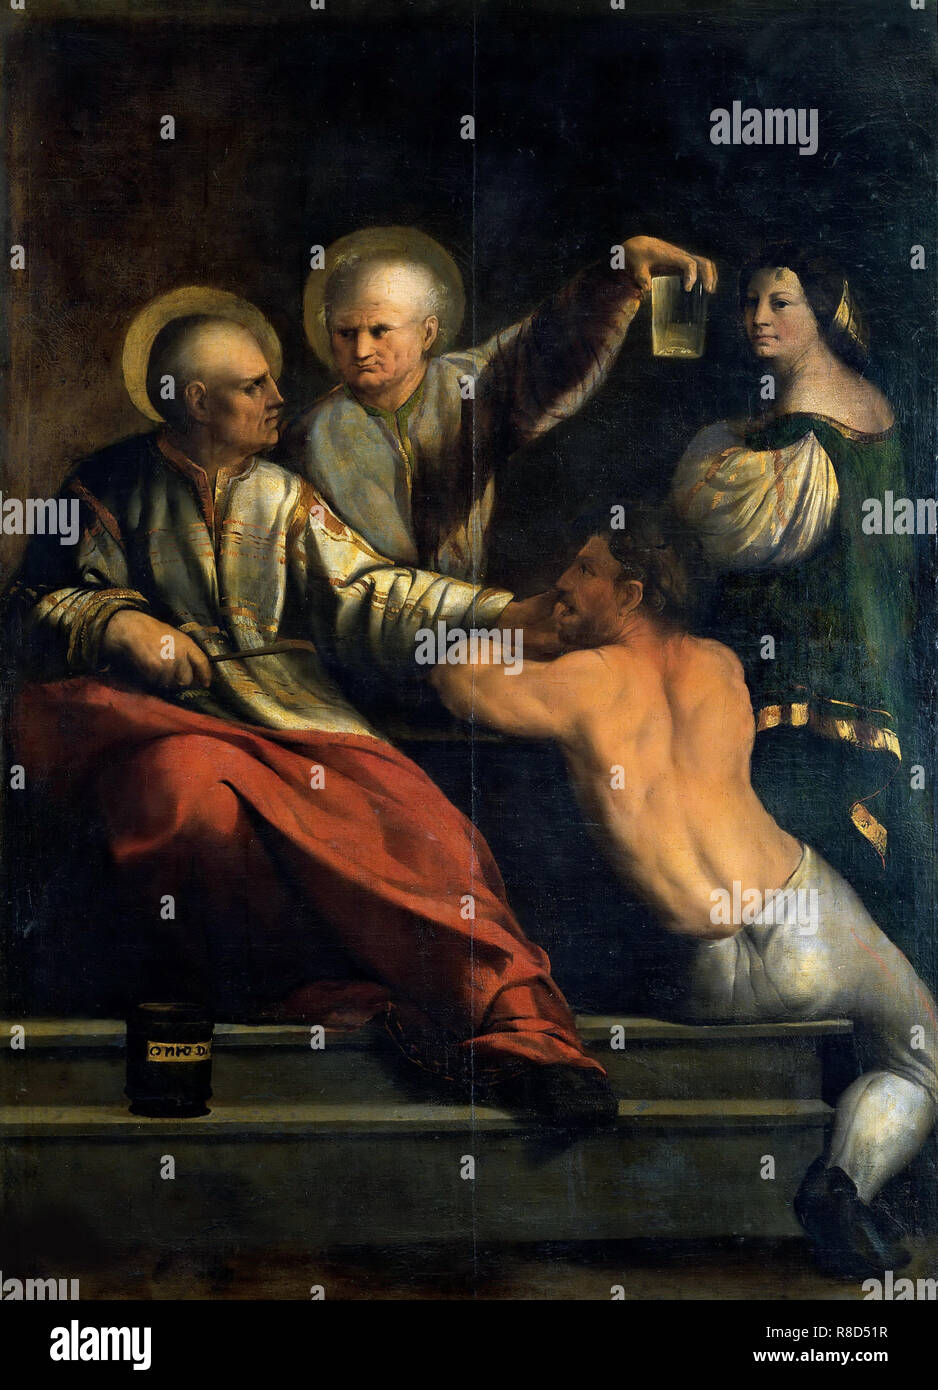 Saint Cosmas and Saint Damian, Between 1534 und 1540. Found in the Collection of Galleria Borghese, Rome. - Stock Image